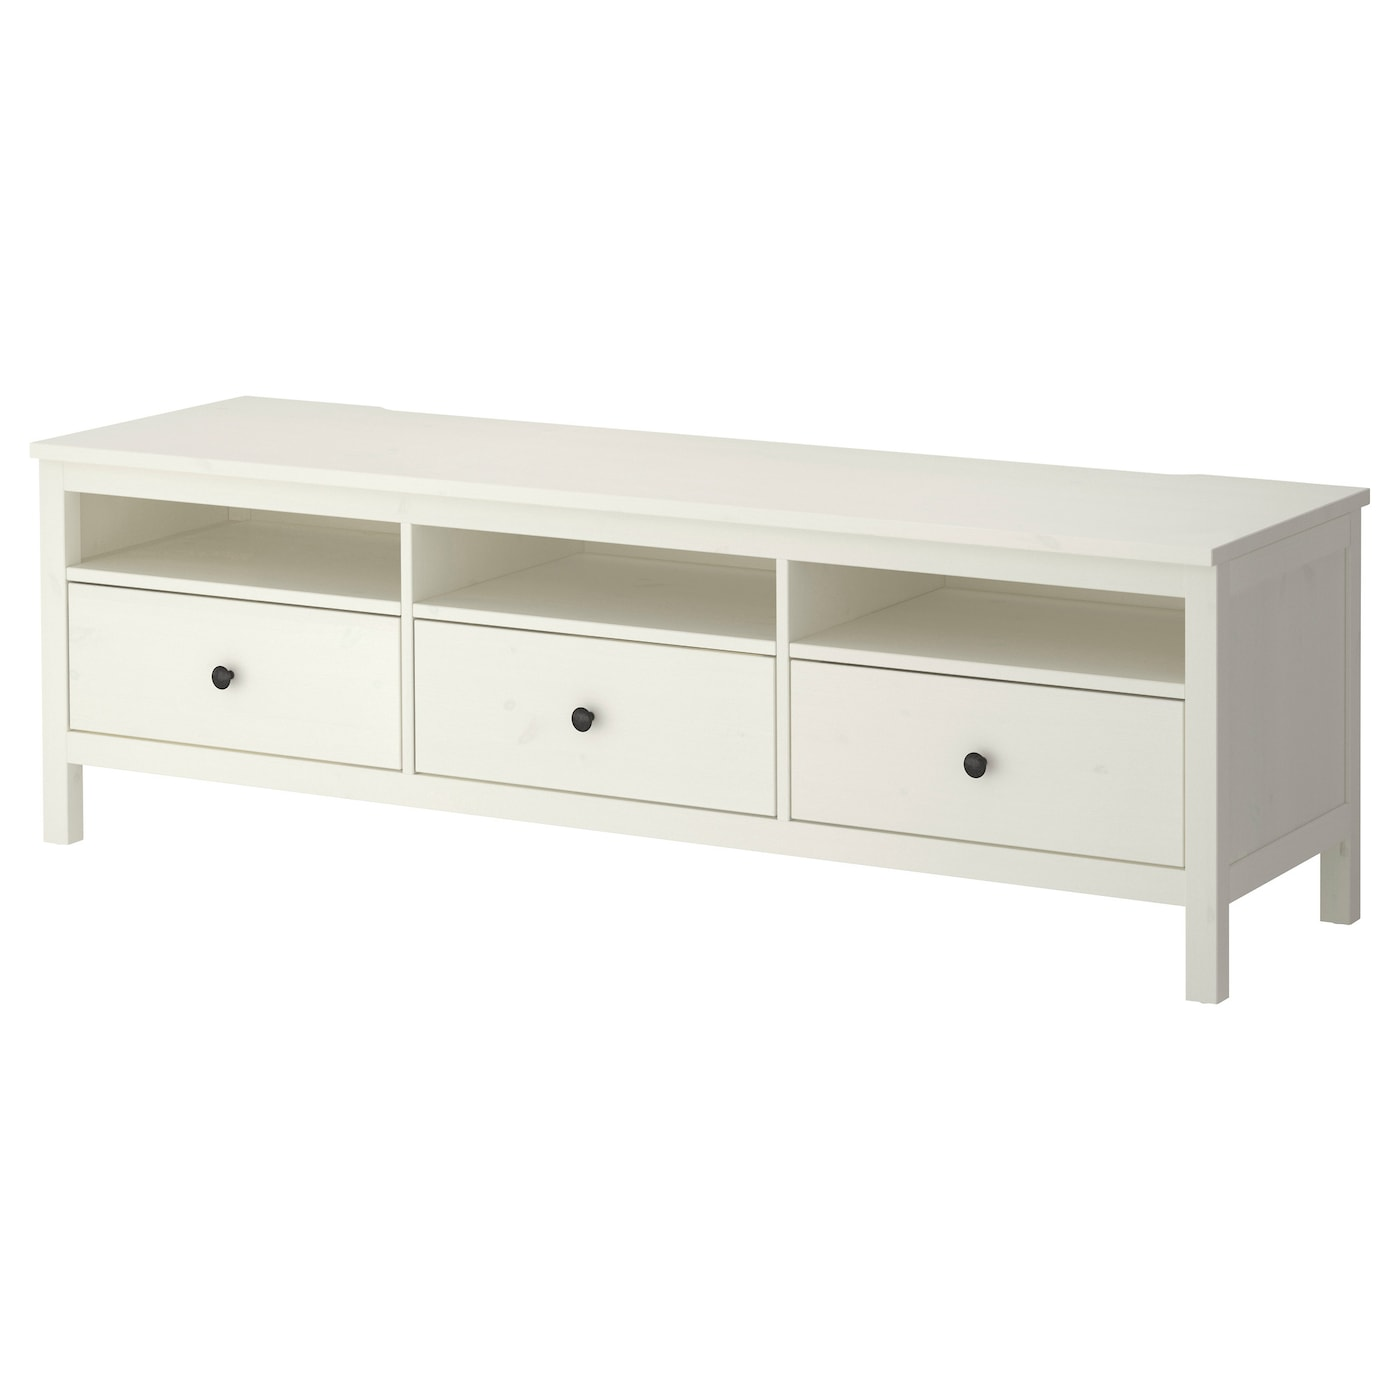 Hemnes tv bench white stain 183x47 cm ikea Storage bench ikea